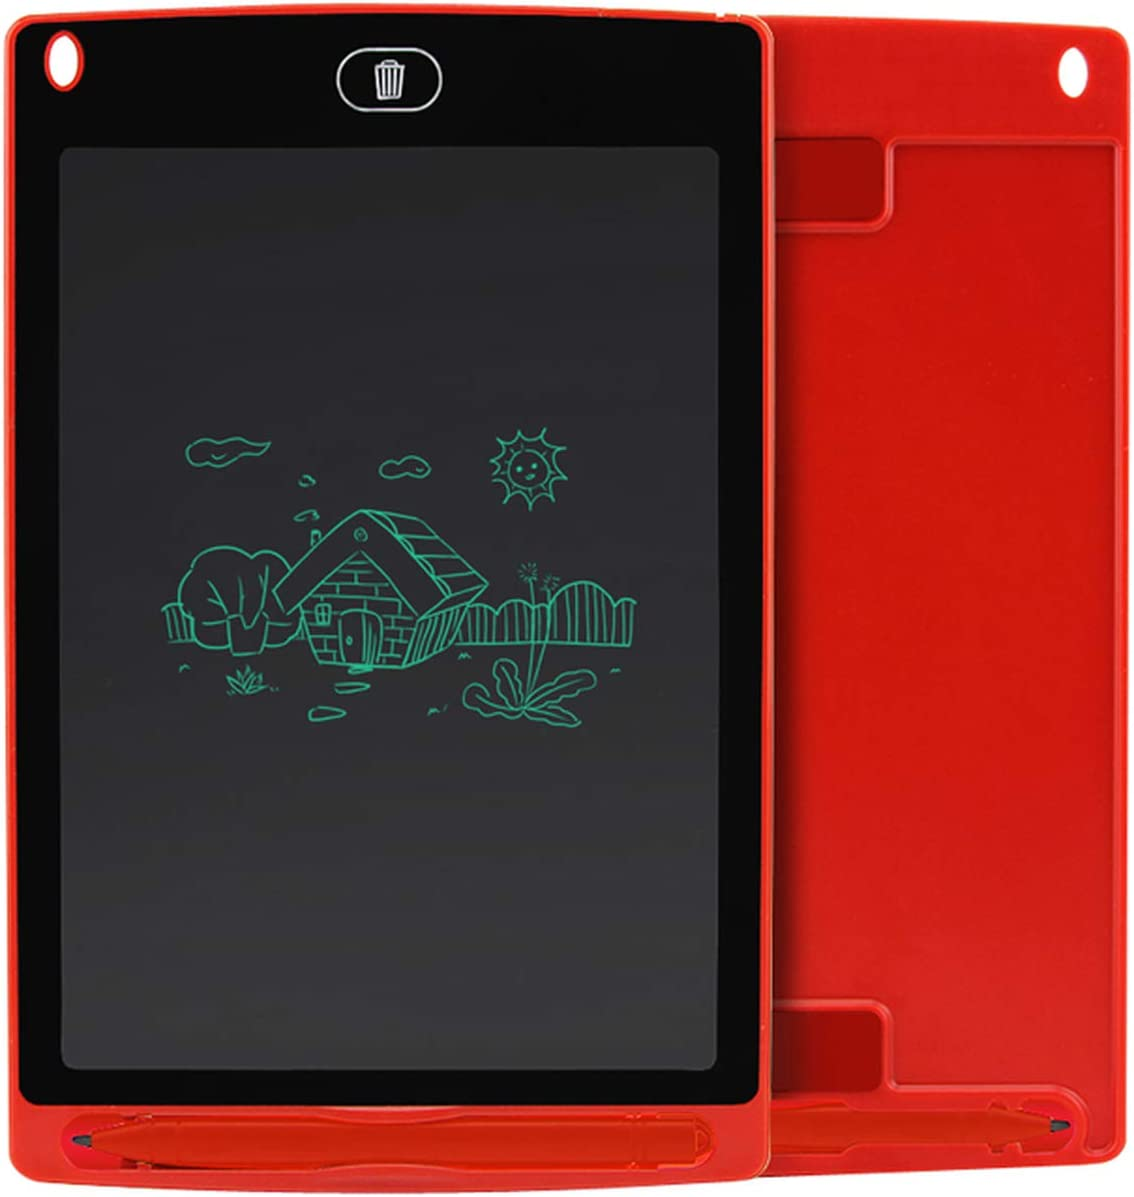 LCD Writing Tablet 8.5 Inch Electronic Drawing Writing Board Handwriting Pads Ultra Thin Board with Pen Erase Button,Red